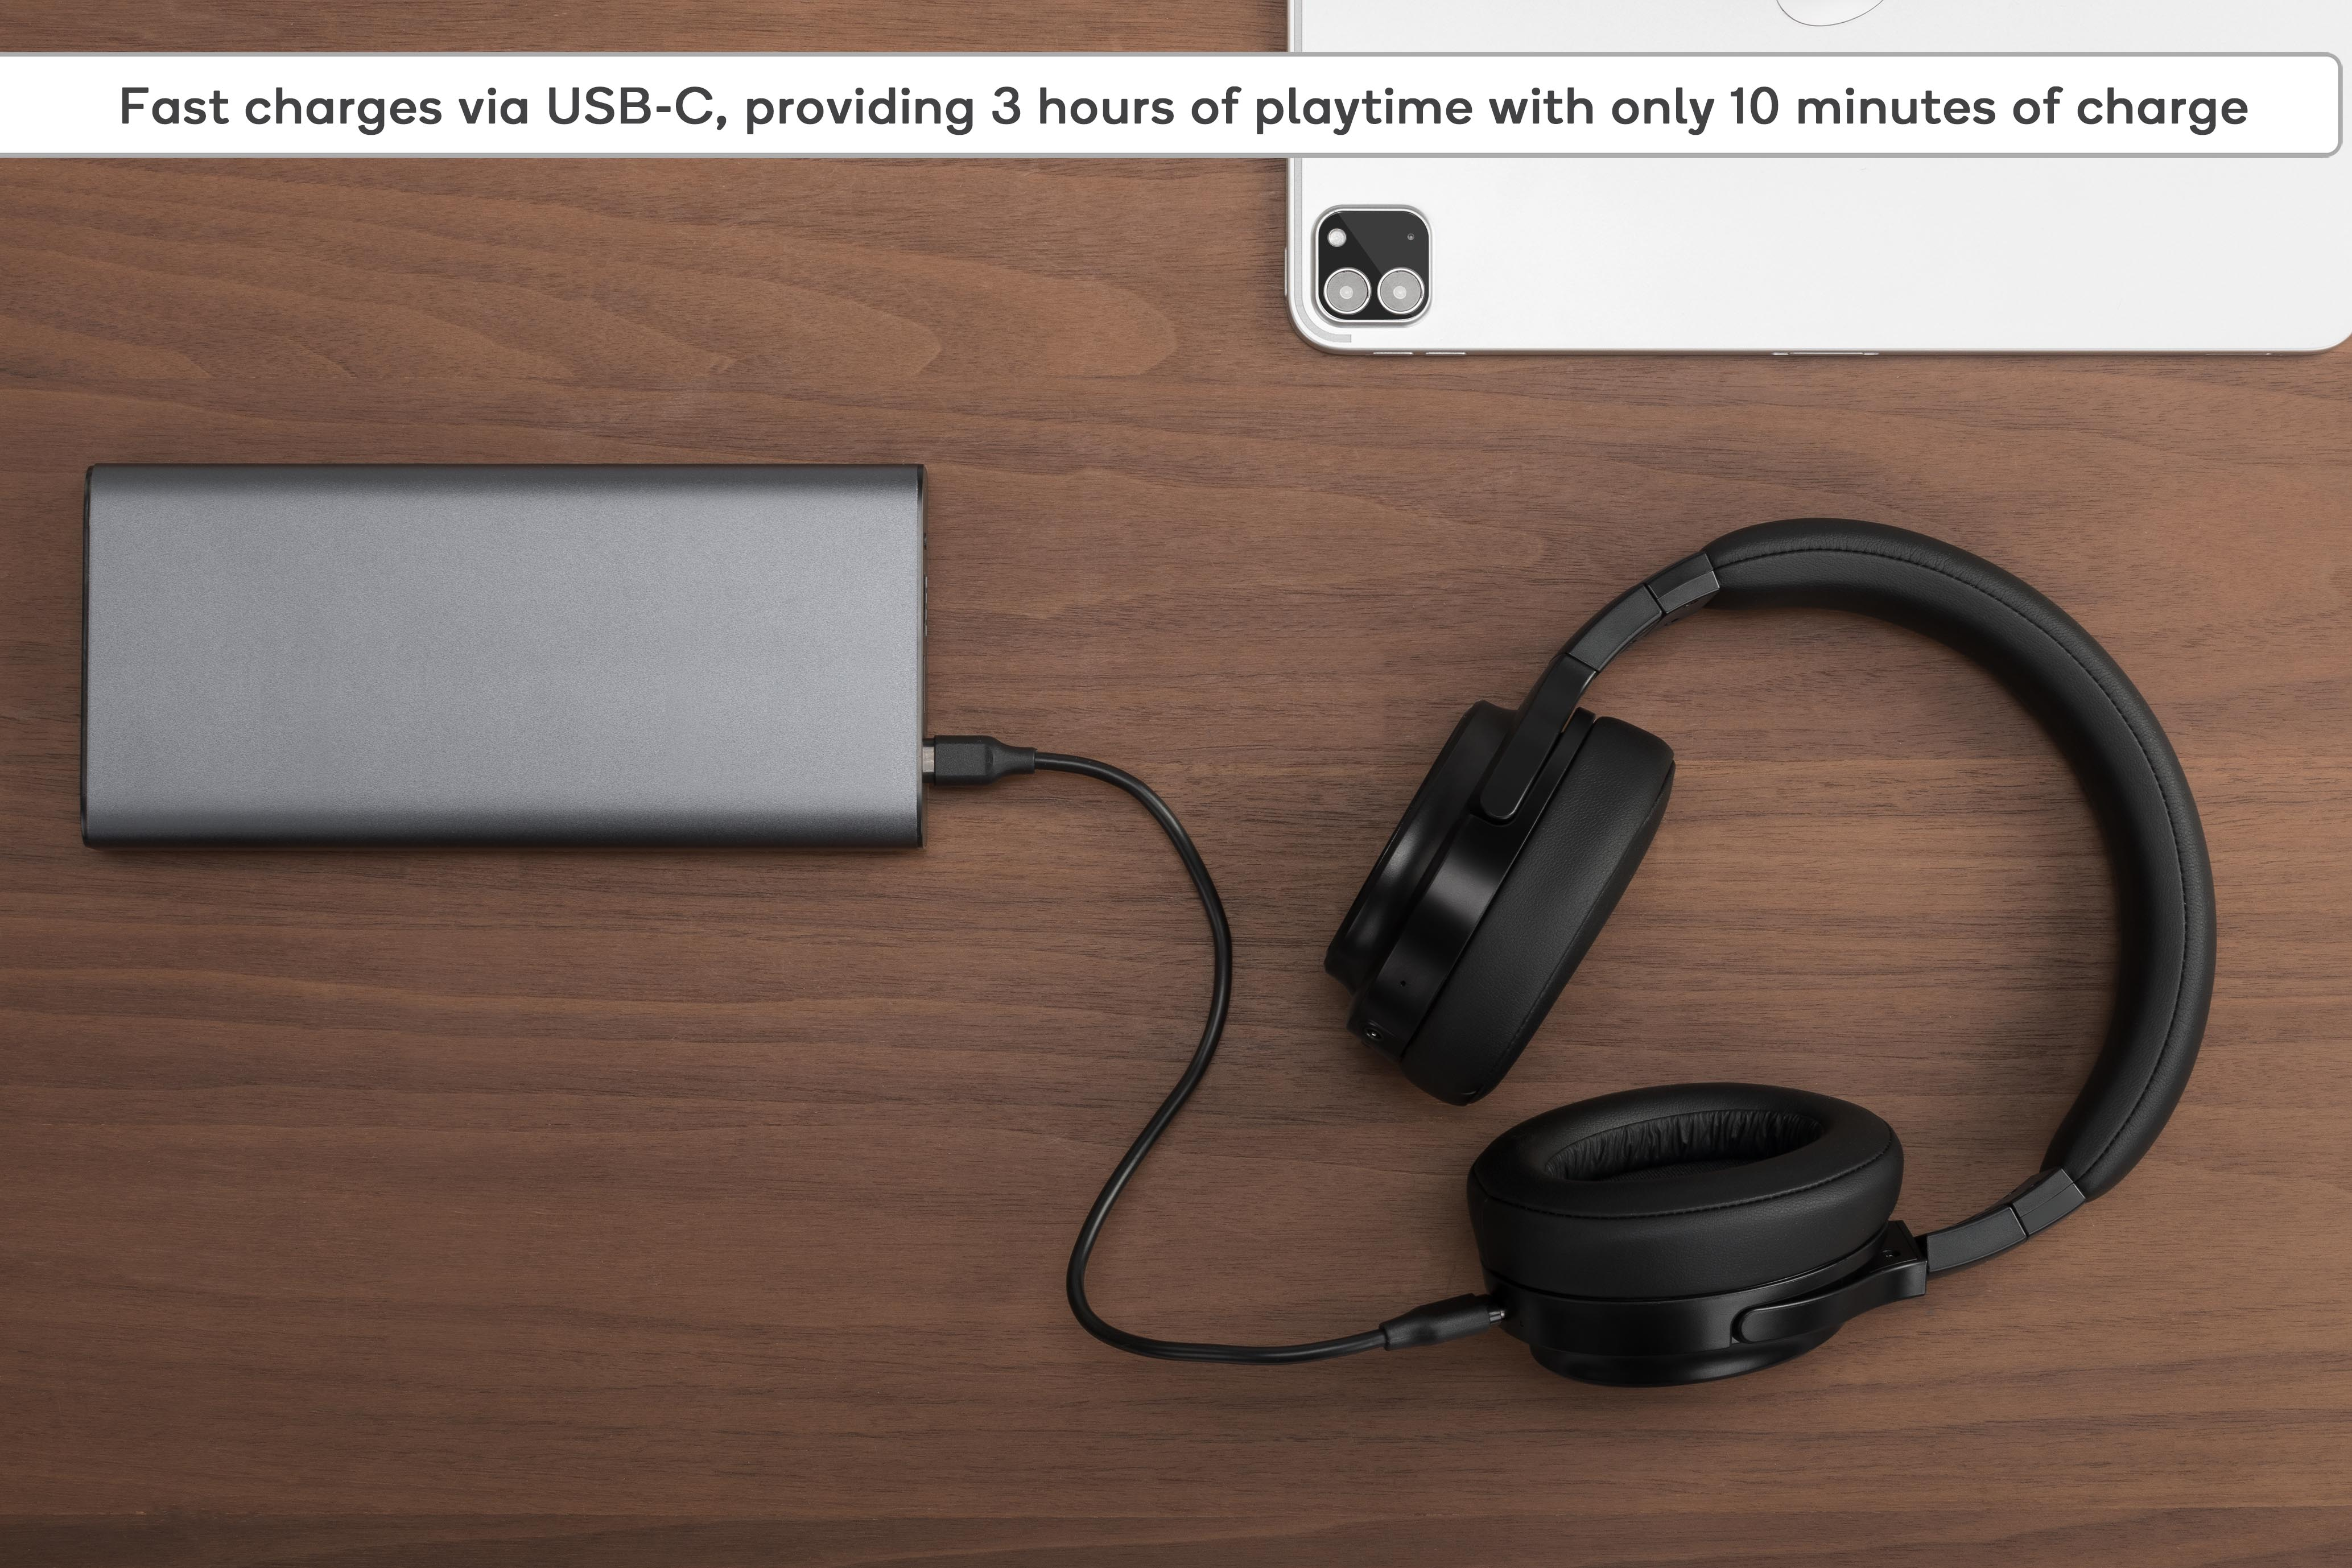 Fast charges via USB-C, providing 3 hours of playtime with only 10 minutes of charge